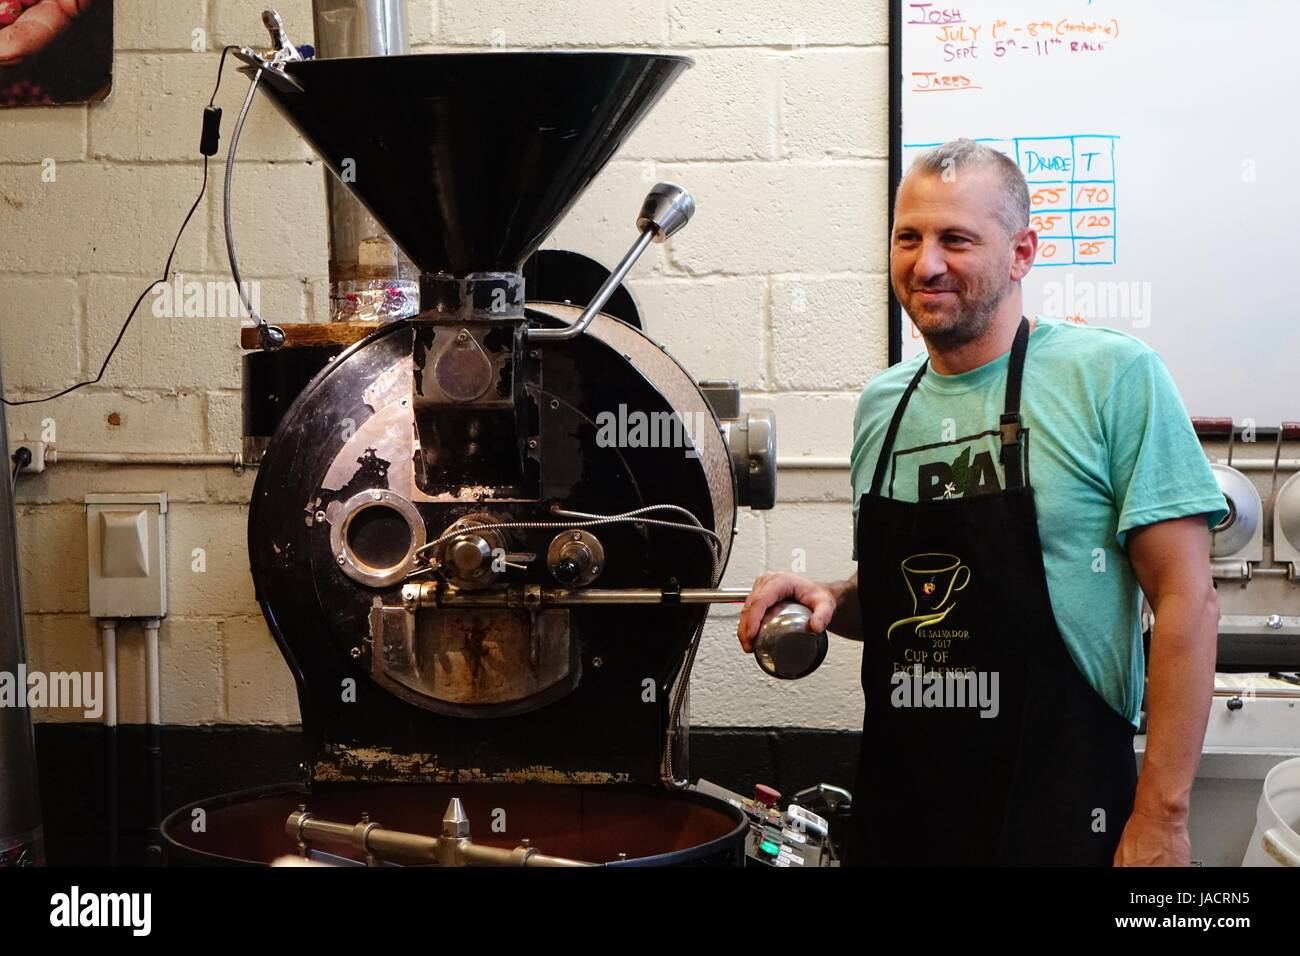 Scott Cornary, owner of Carrboro Coffee Rosters and the Open Eye Café, describes the process of roasting coffee - Stock Image